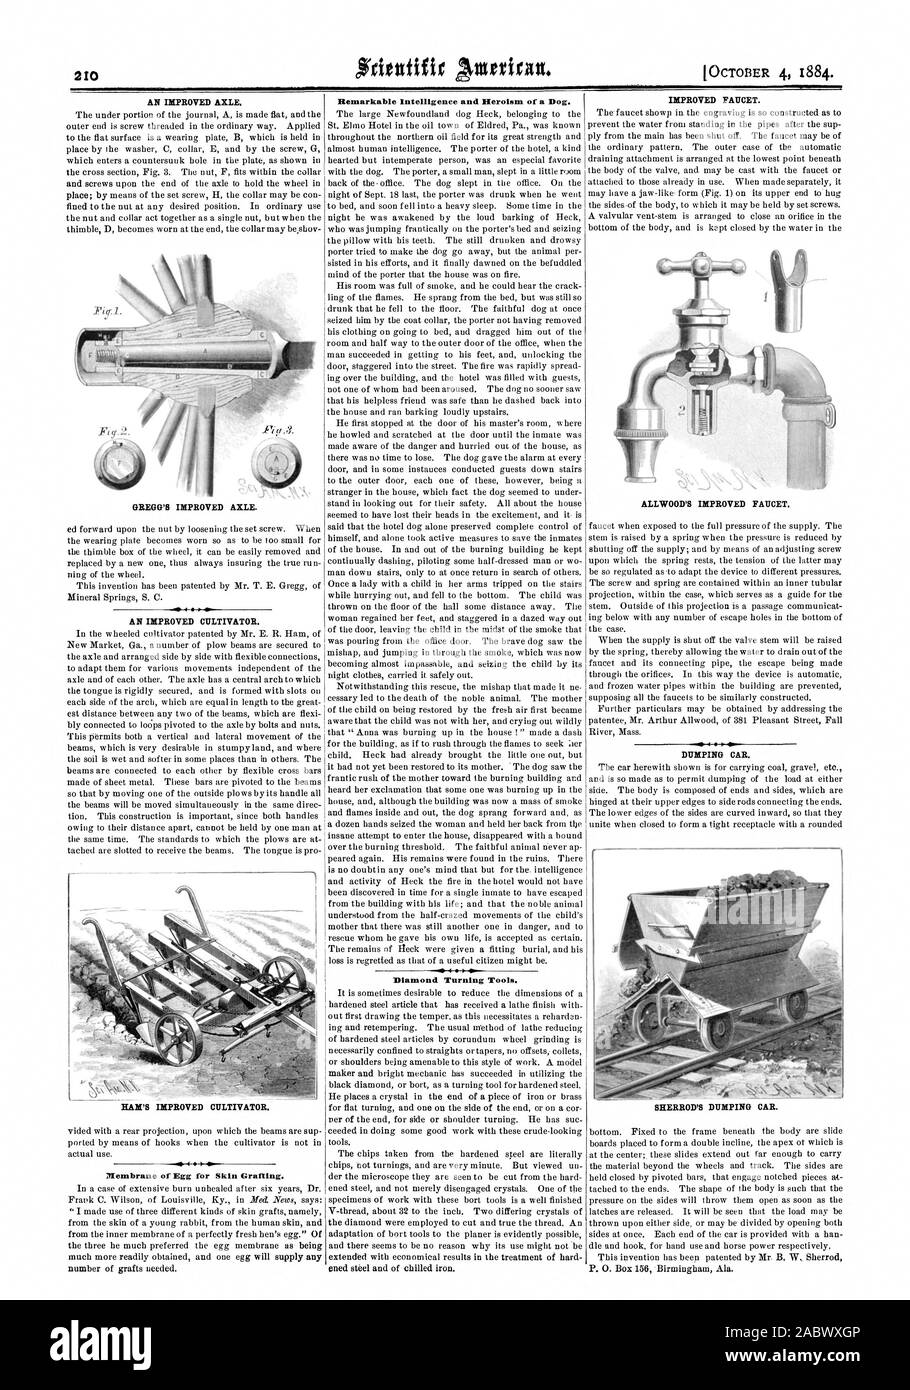 Membrane of Egg for Skin Grafting. Remarkable Intelligence and Heroism of a Dog. 4  Siv Diamond Turning Tools., scientific american, 1884-10-04 Stock Photo